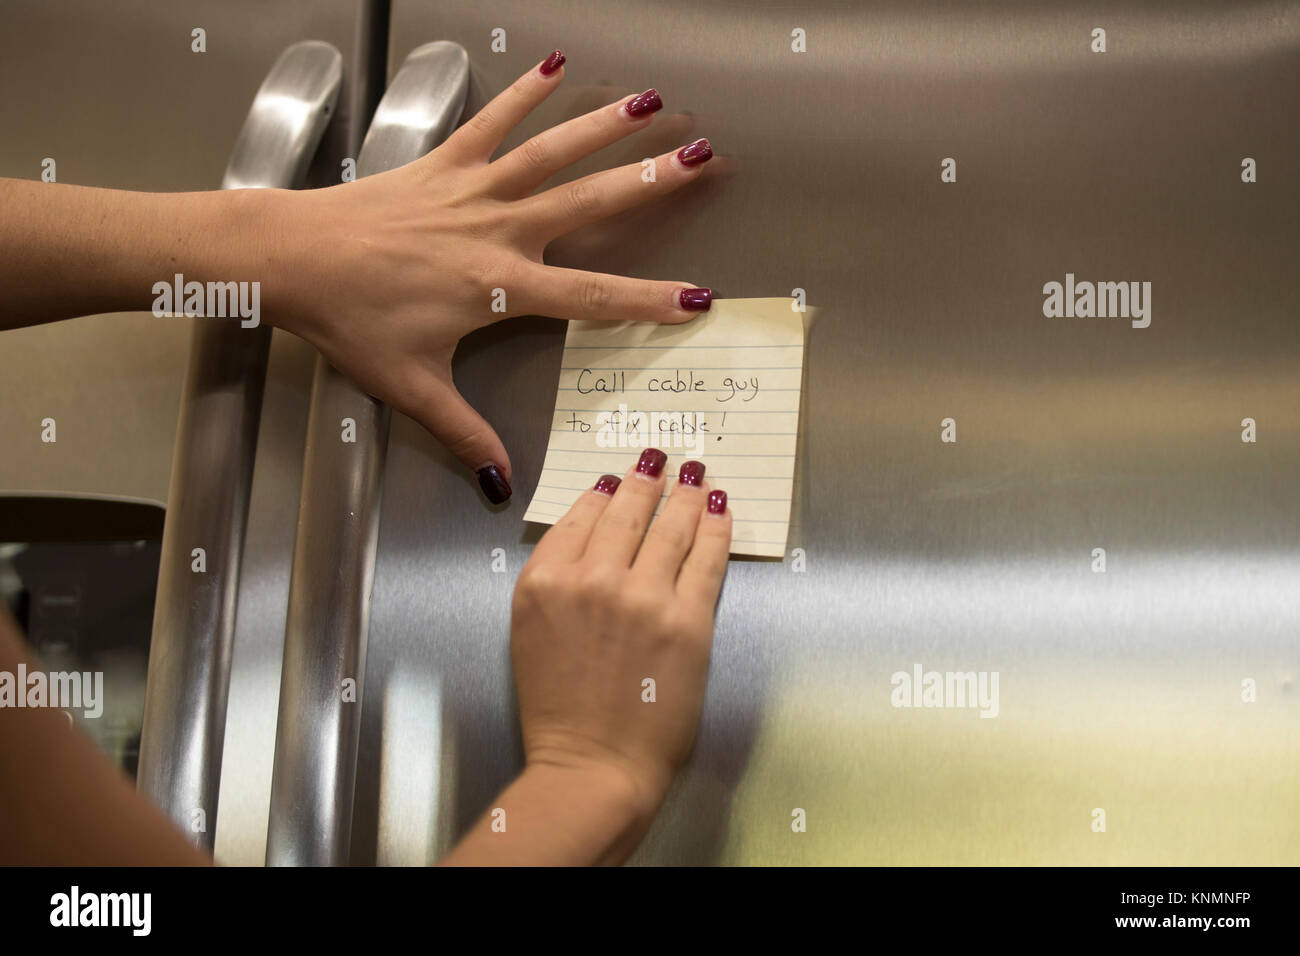 Sticky note reminders stuck on the refrigerator in the kitchen. - Stock Image